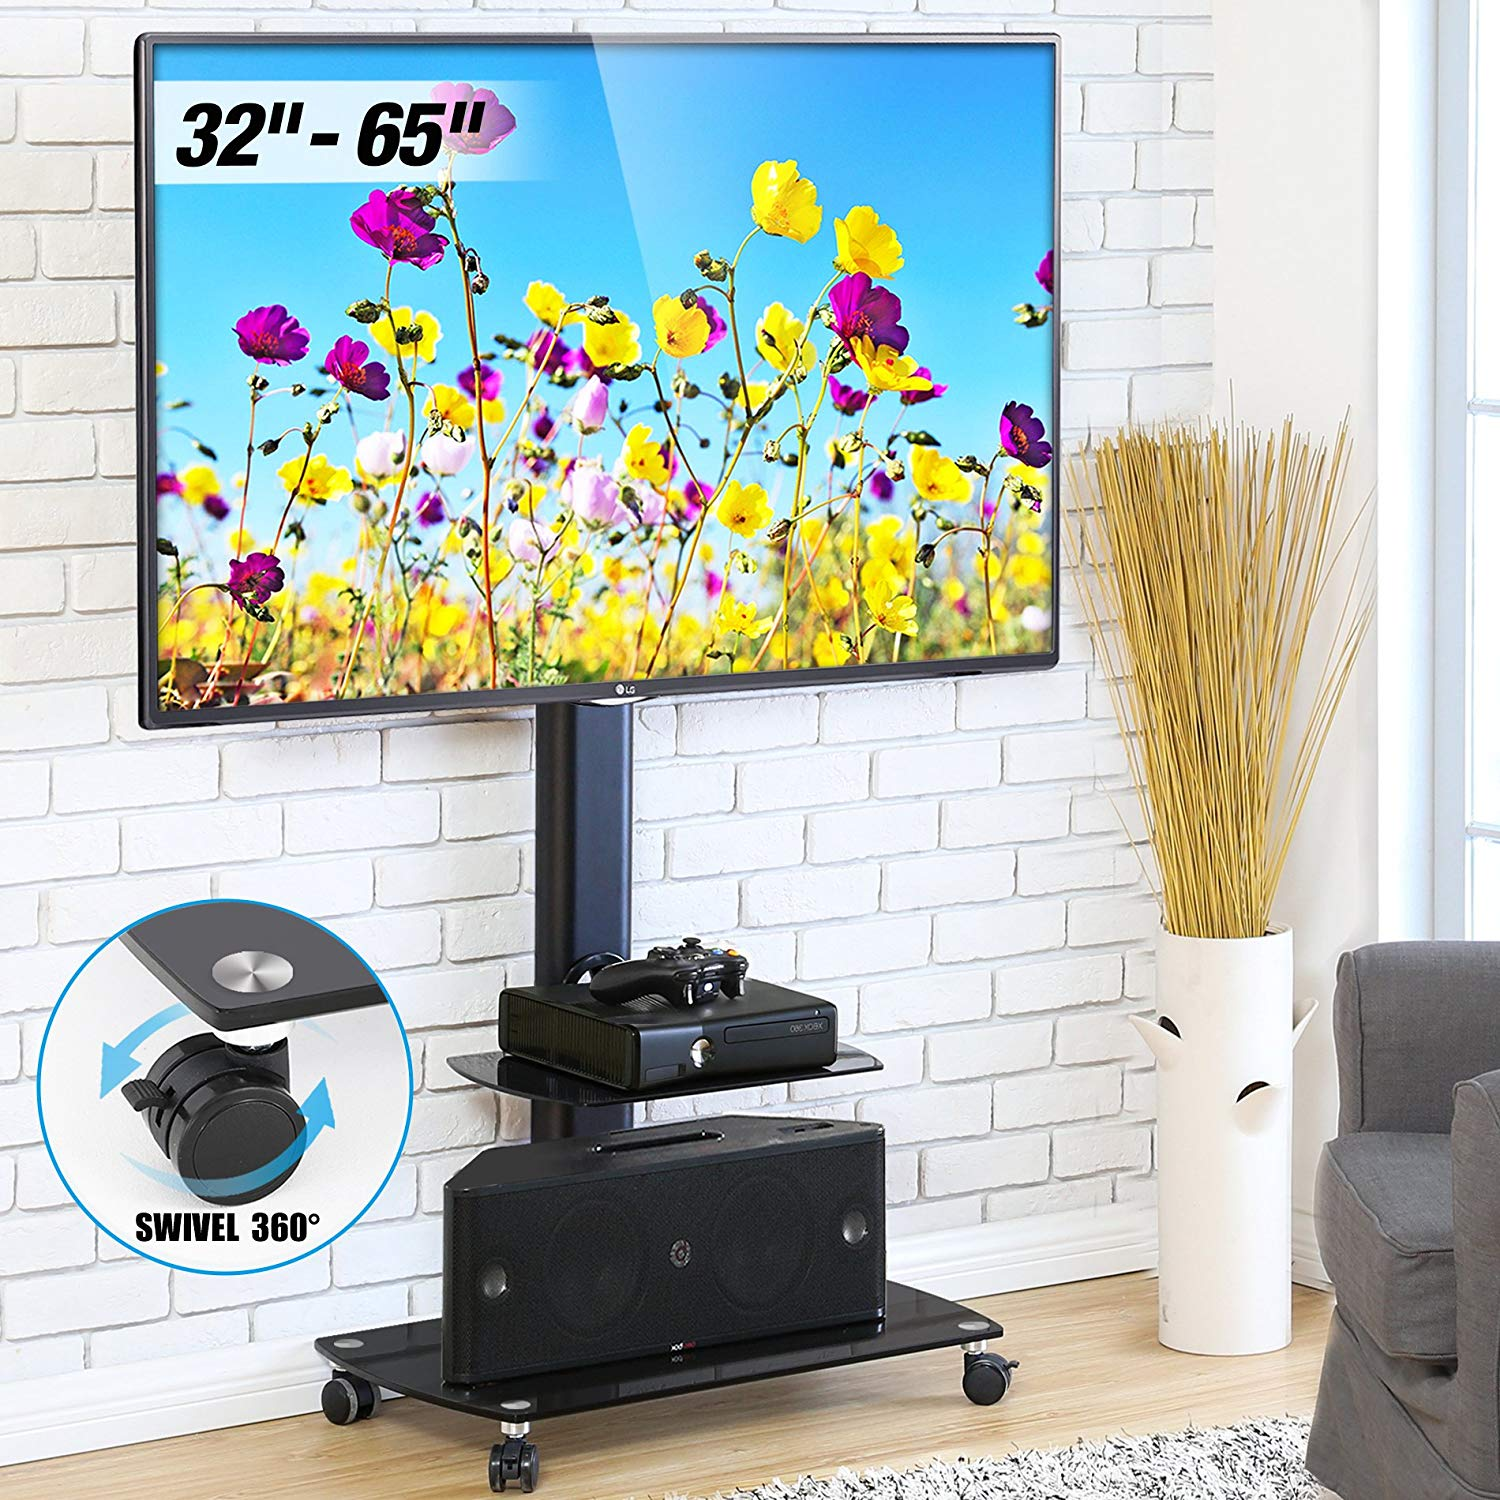 FITUEYES Floor TV Stand with Mount Rolling TV Stand Cart for up to 65 inch Universal Vizio/Sumsung/Sony Tvs Max VESA 400x600 TT206503GB